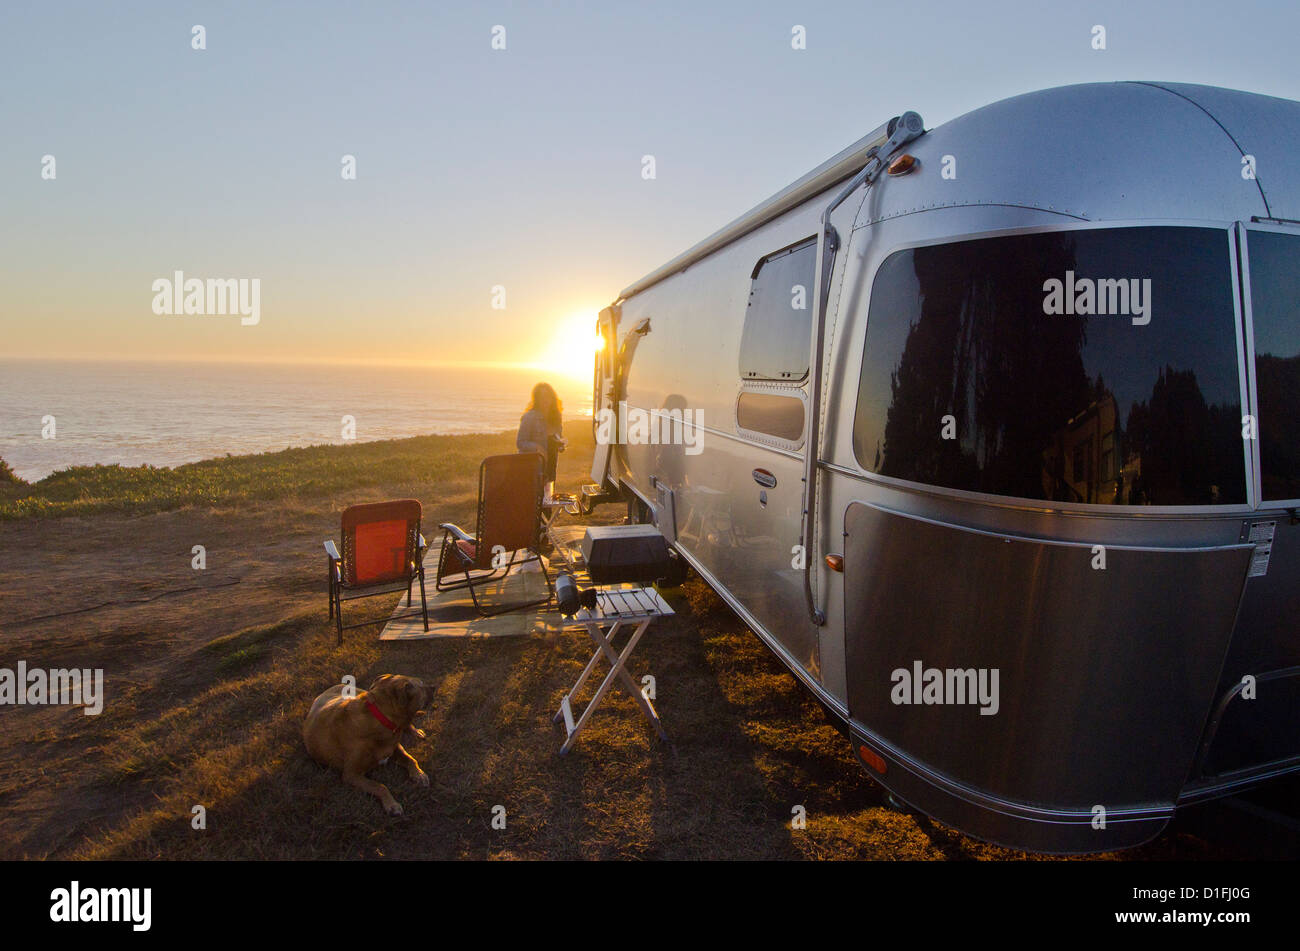 airstream camping northern california coast stock photo. Black Bedroom Furniture Sets. Home Design Ideas